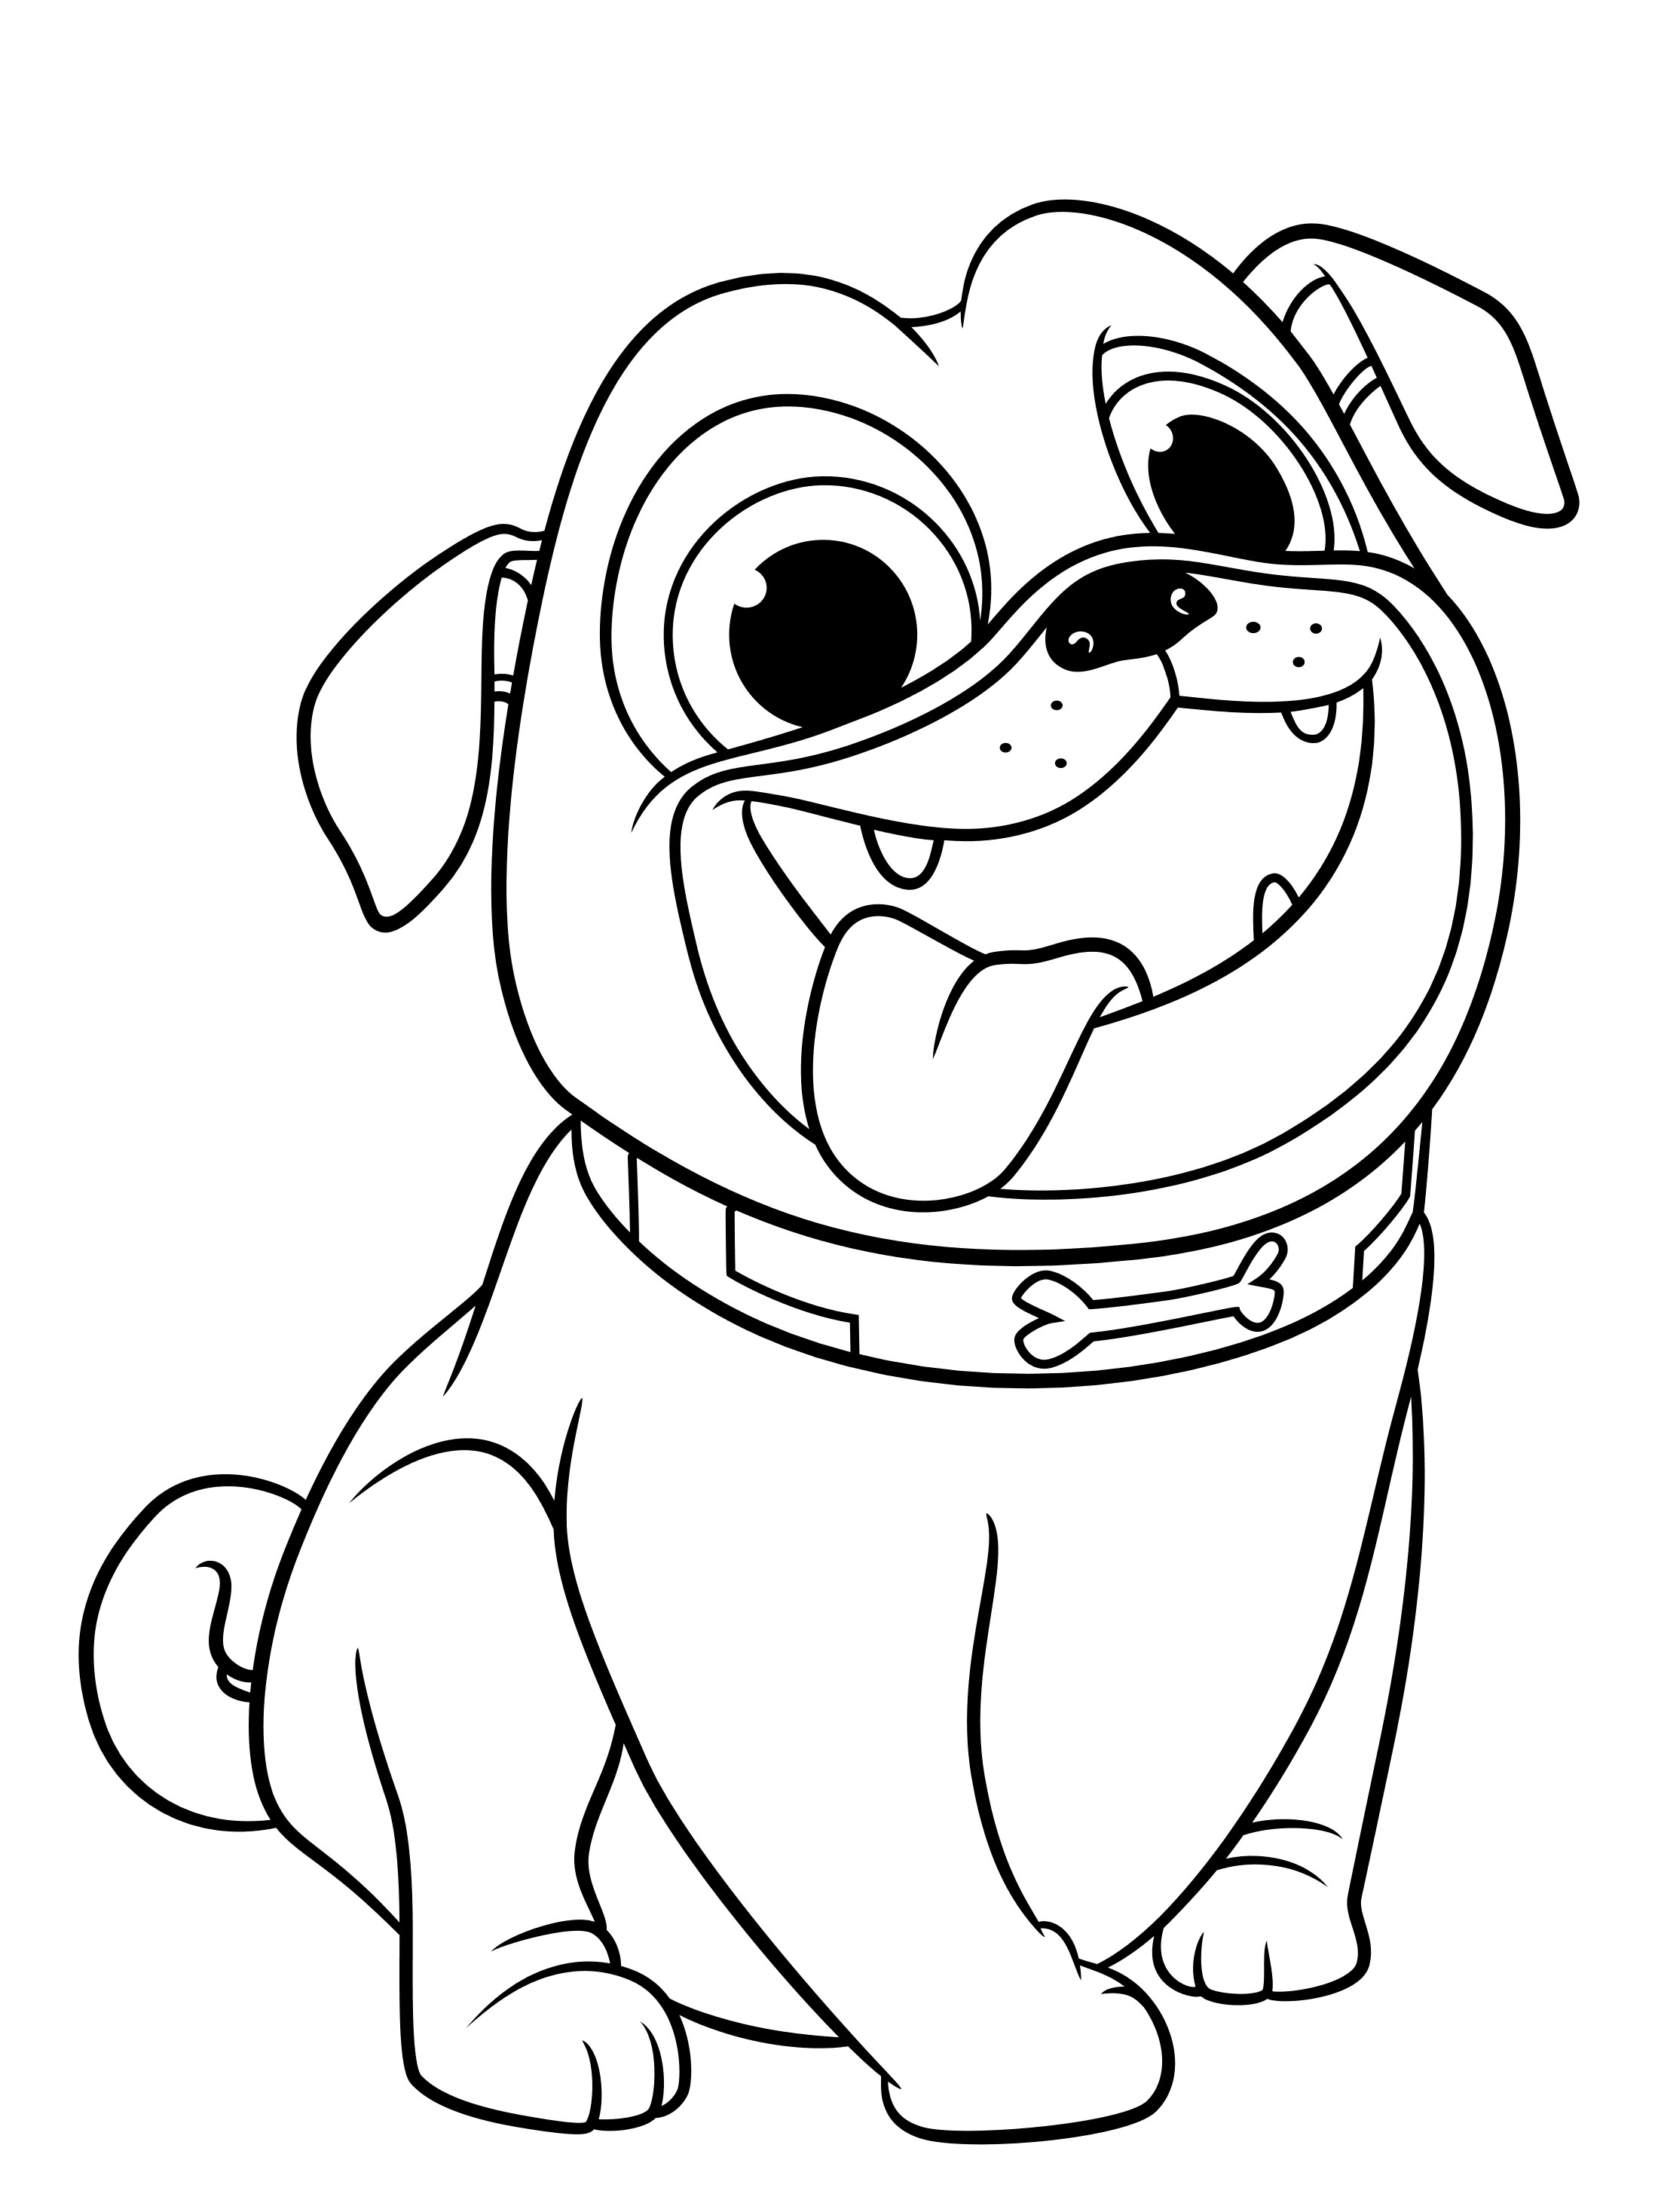 printable picture of a dog color pages for kids bulldog free coloring pages for of dog picture a printable